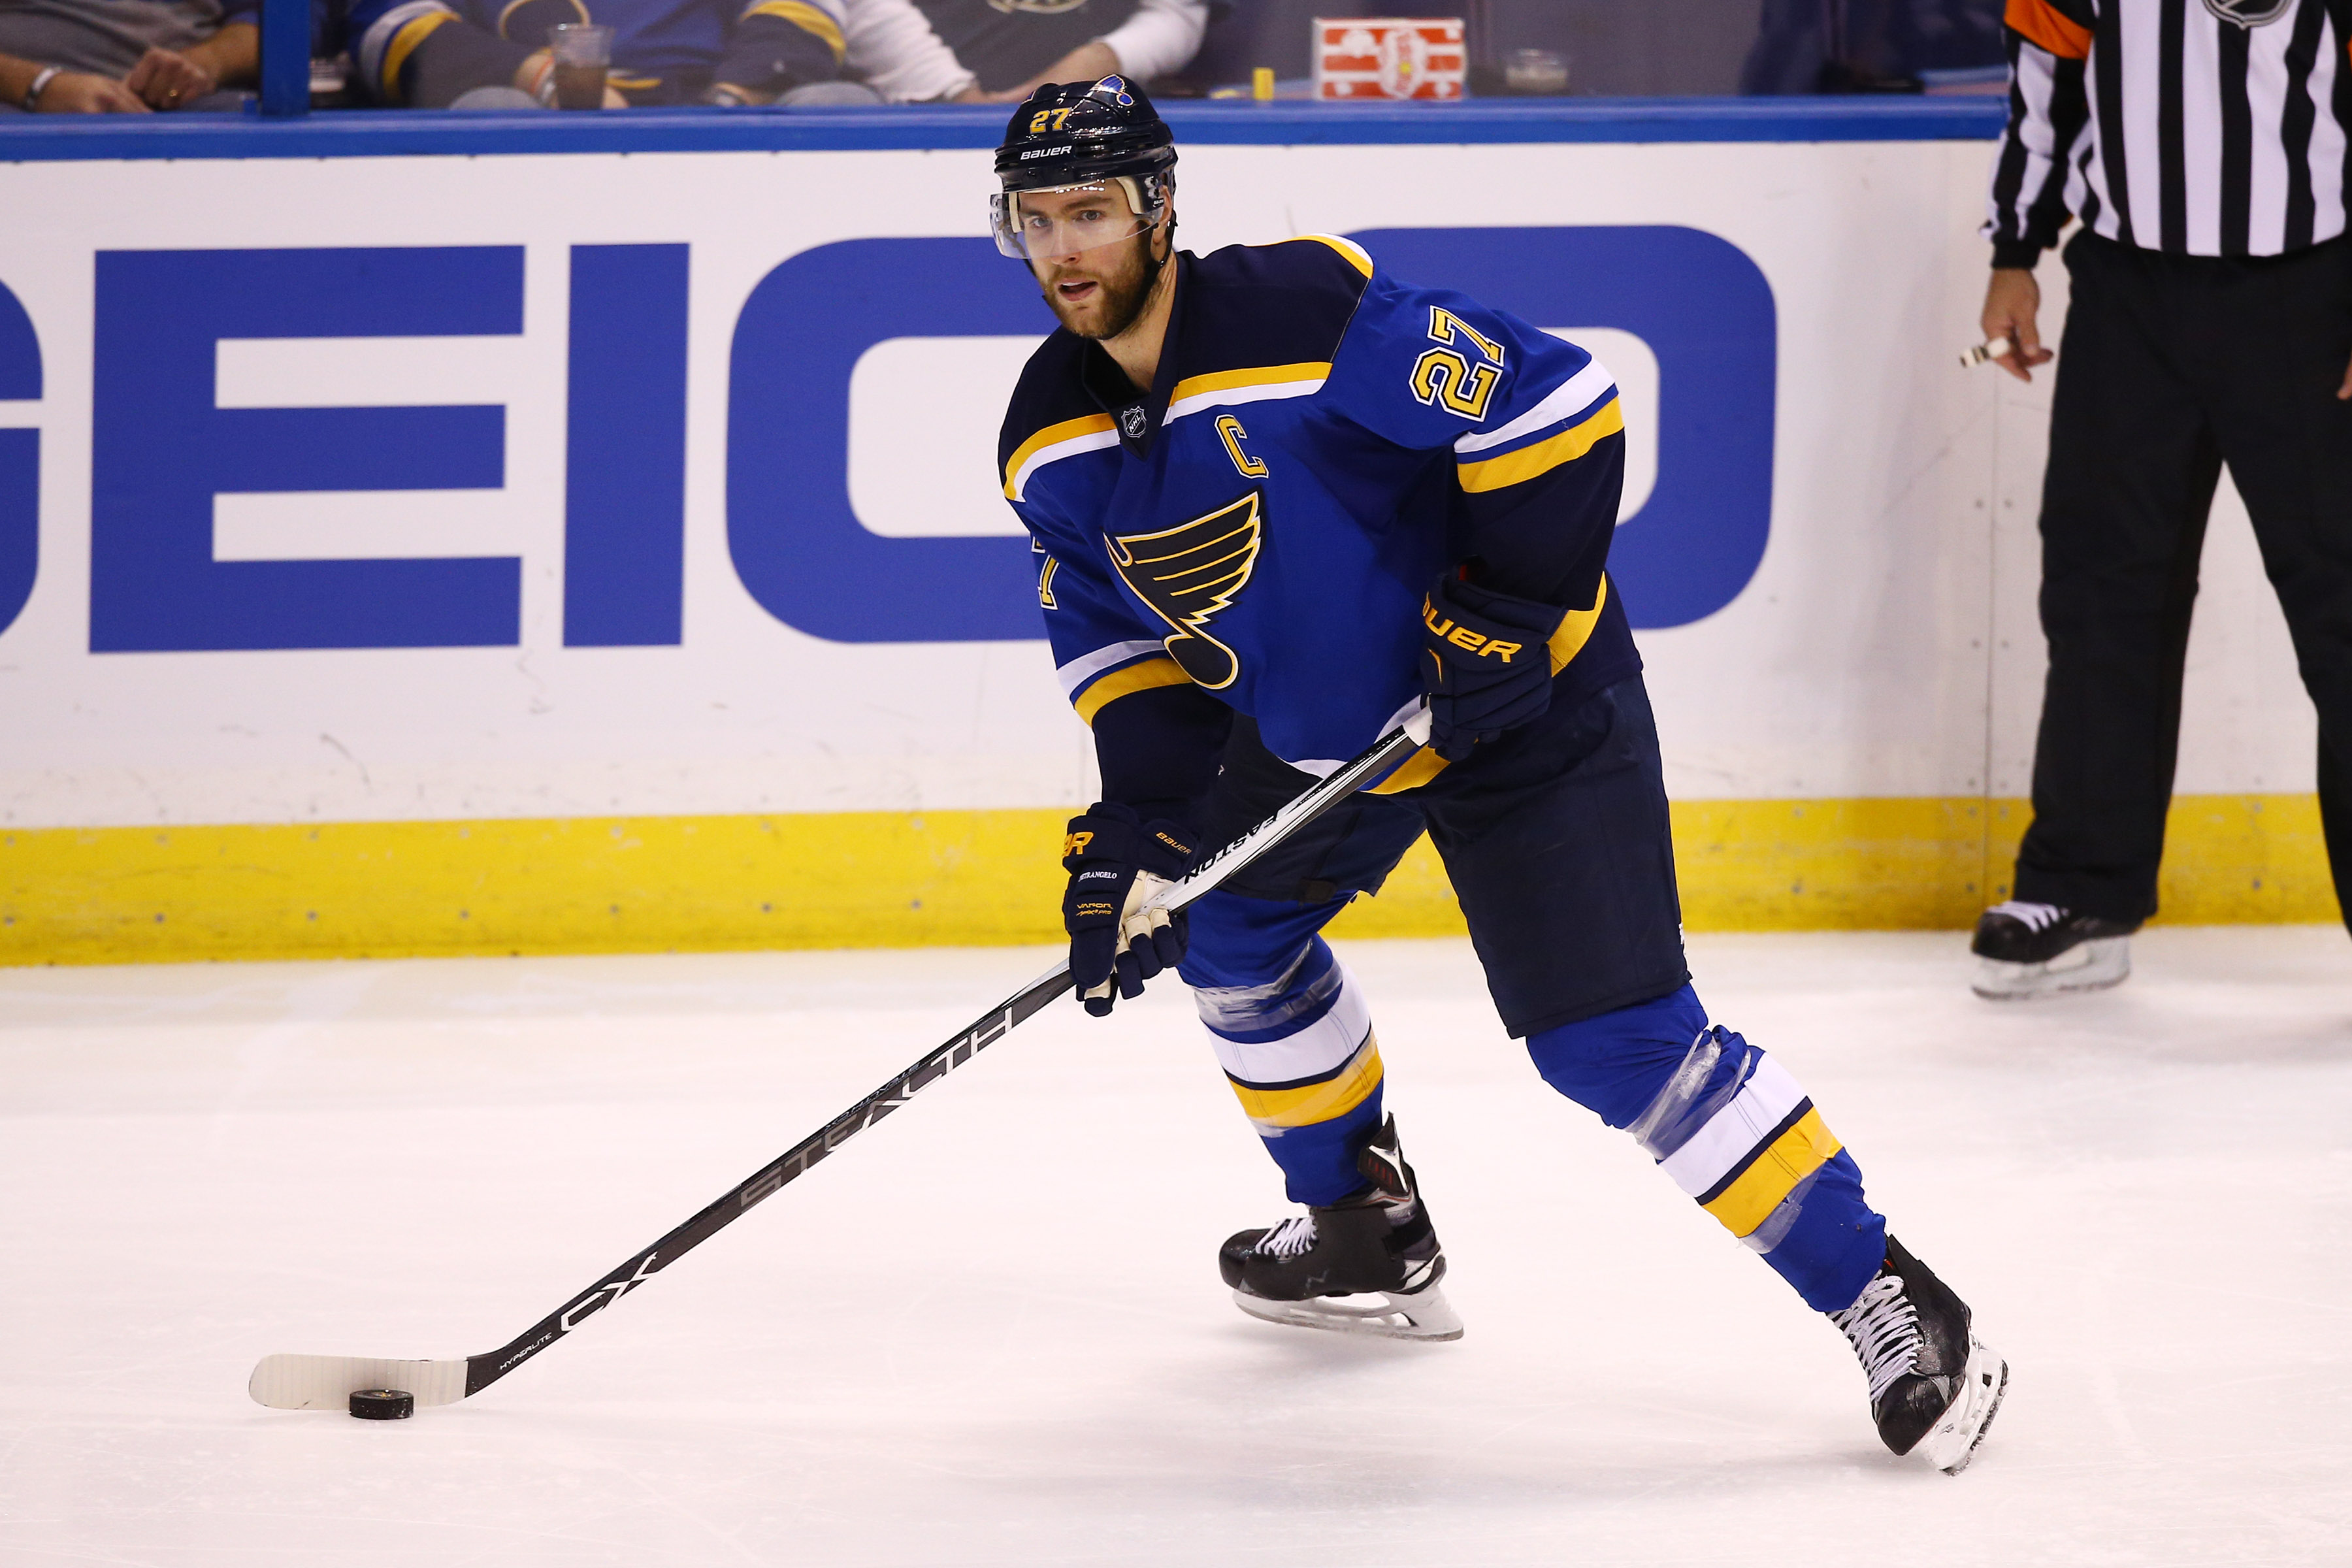 9646164-nhl-detroit-red-wings-at-st.-louis-blues